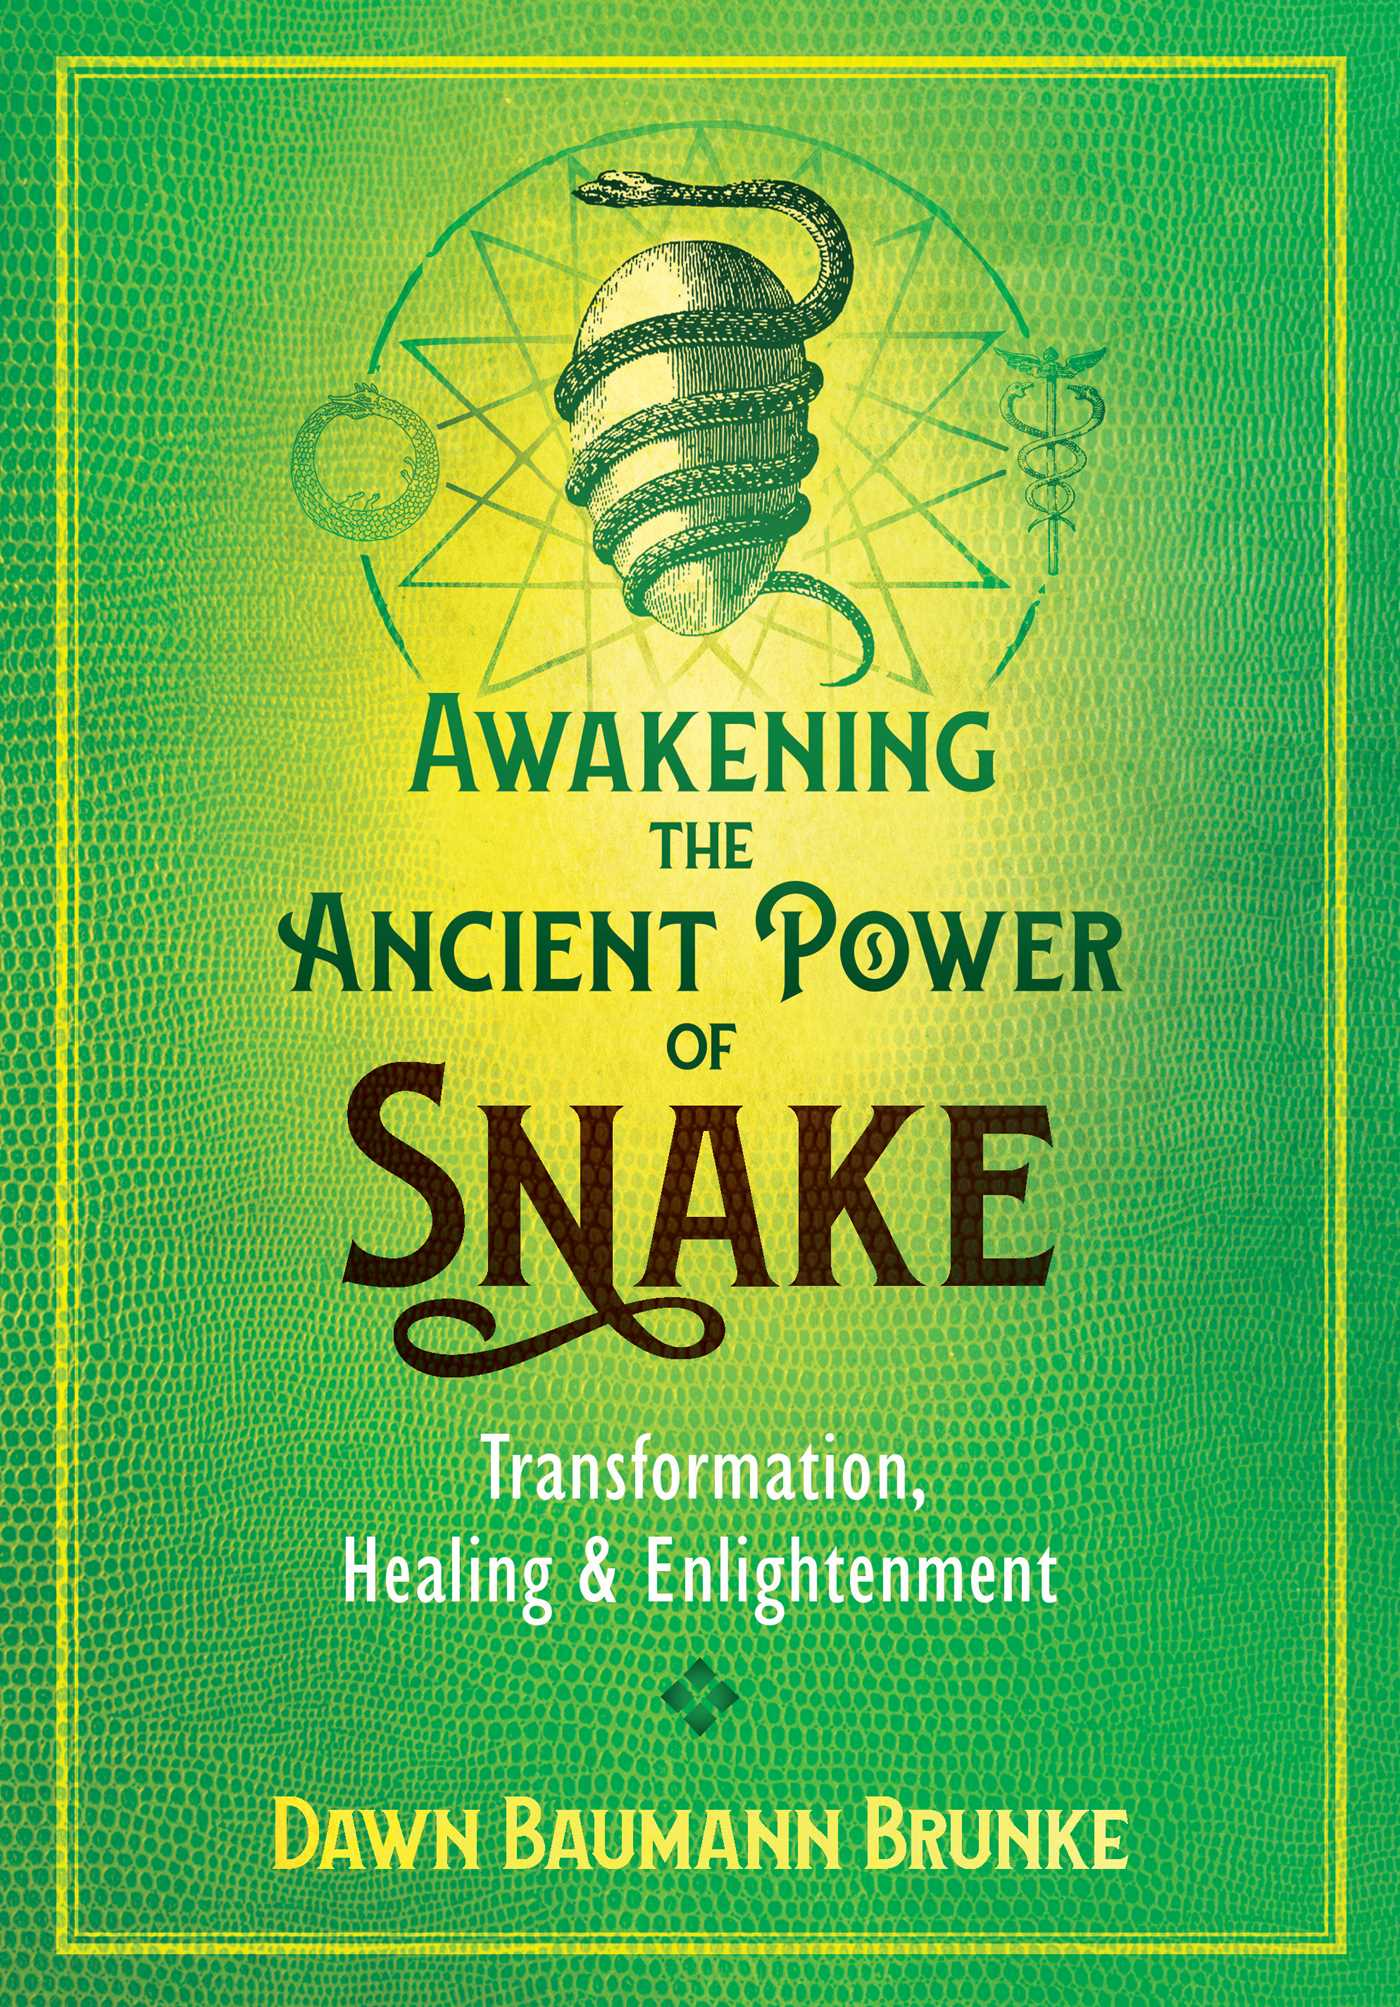 Awakening the Ancient Power of Snake | Book by Dawn Baumann